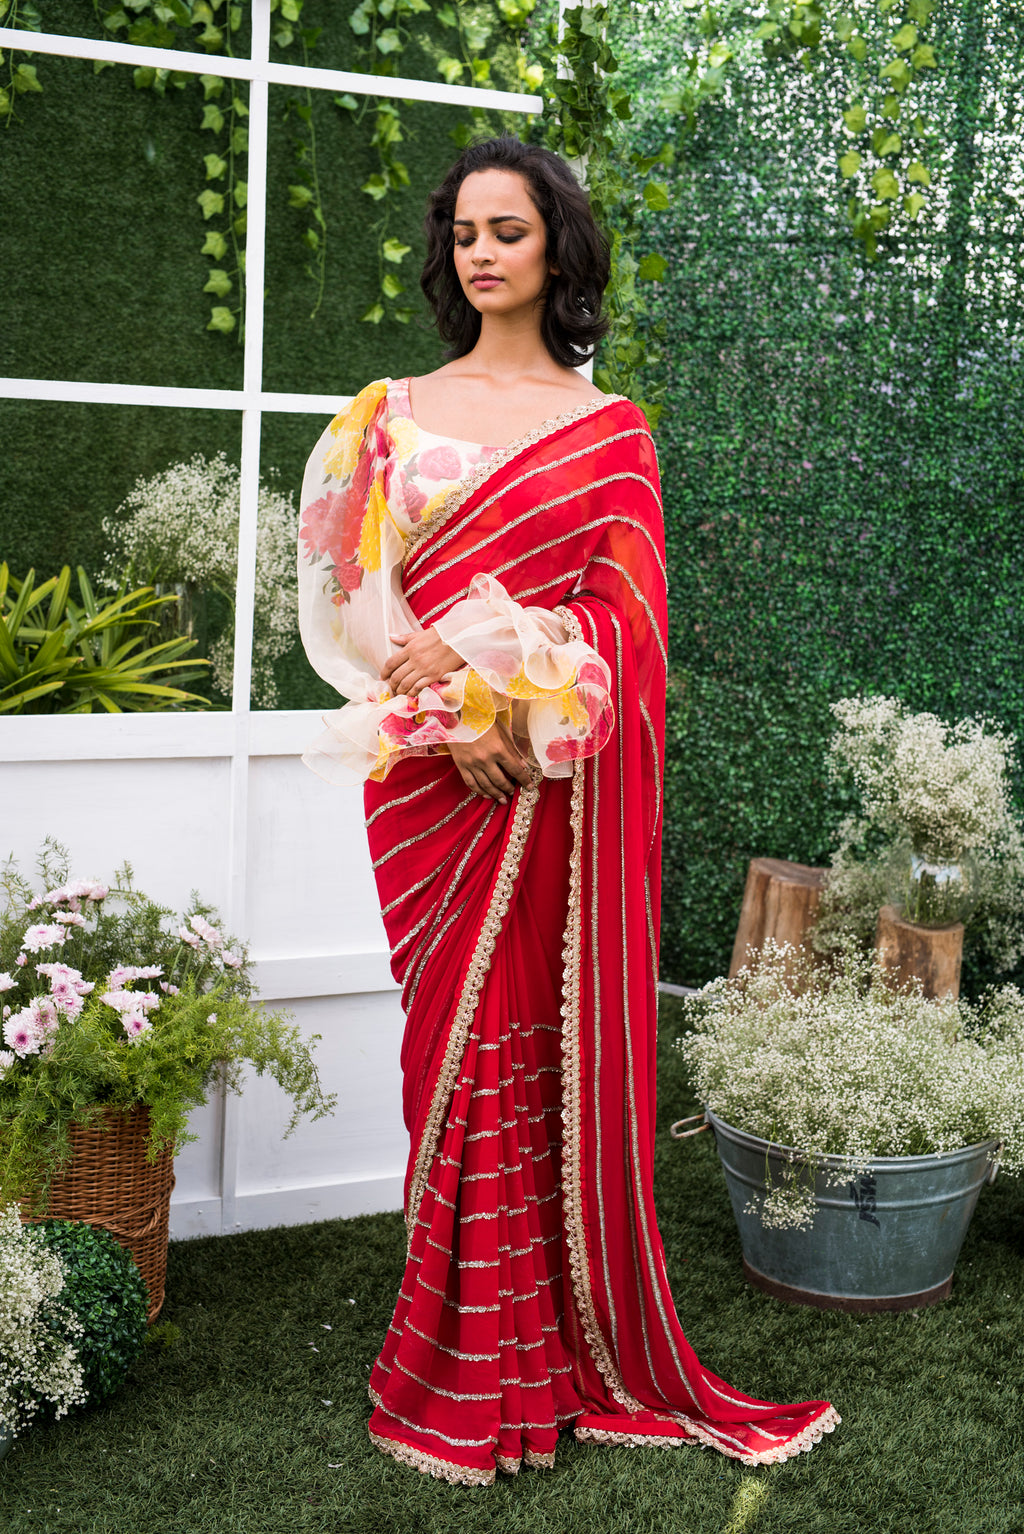 Mrunalini Rao Red Saree with Floral Blouse